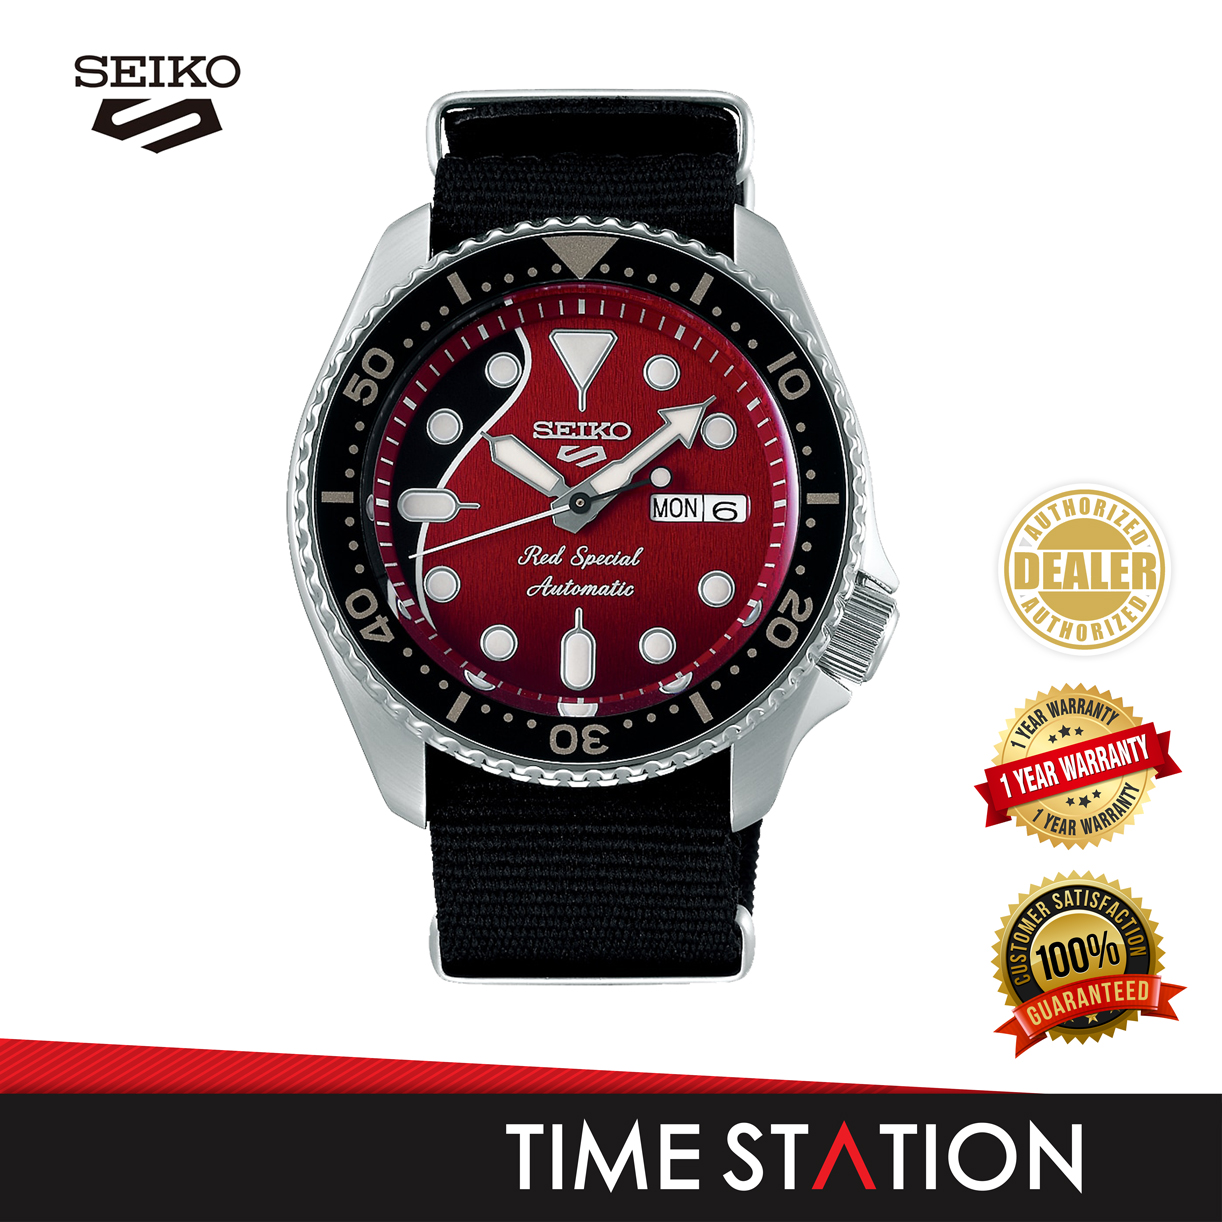 Time StationSEIKO 5 SPORTS SRPE83K1 BRIAN MAY RED SPECIAL GUITAR AUTOMATIC NYLON MENS WATCH **LIMITED EDITION**